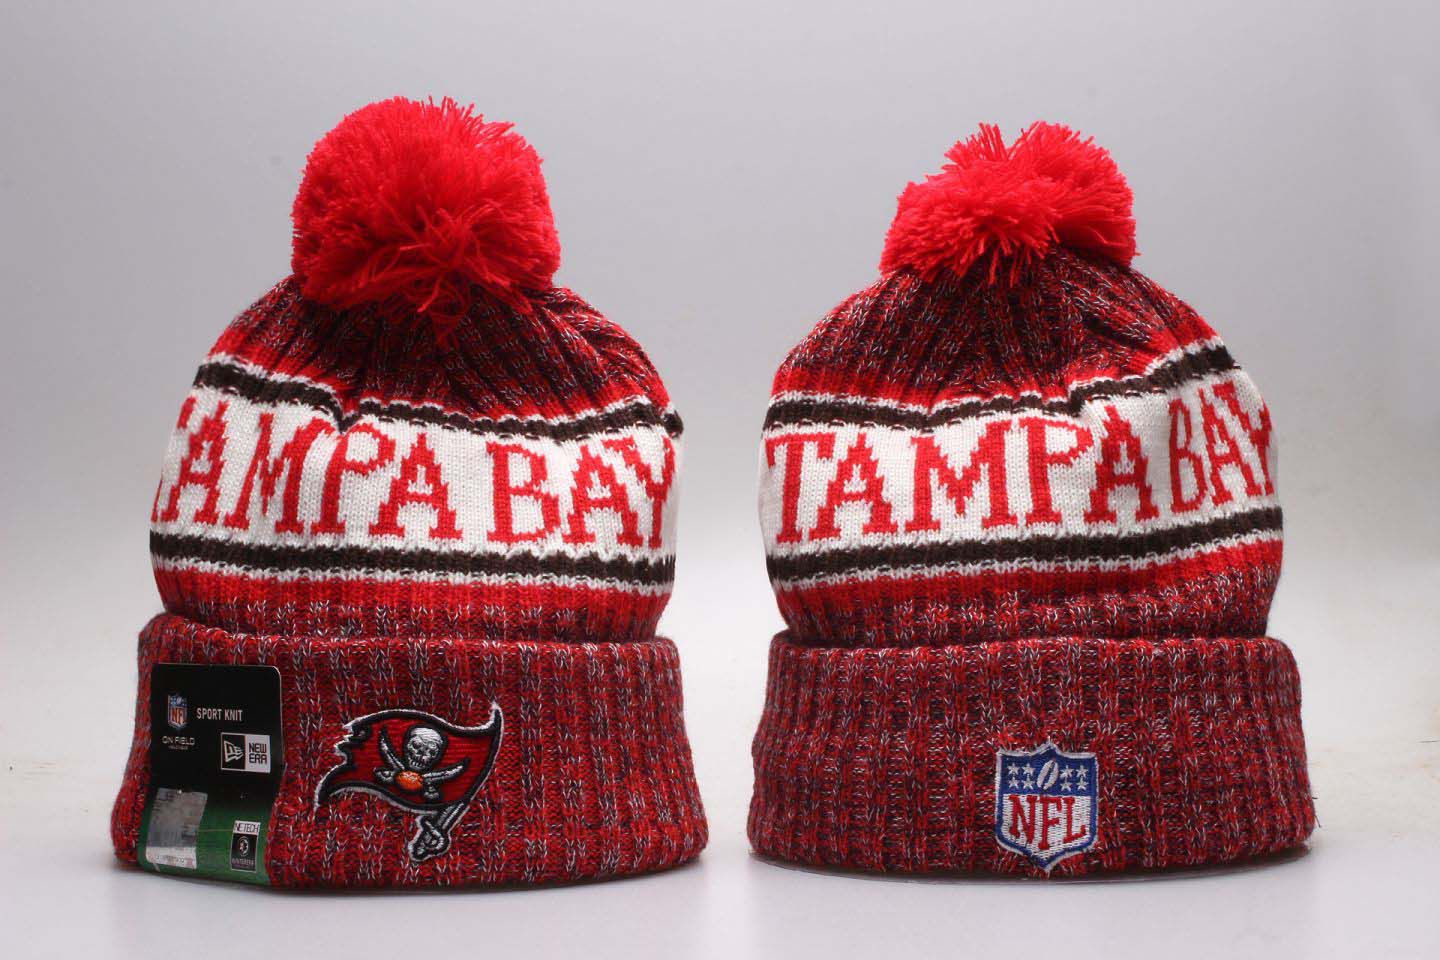 NFL Tampa Bay Buccaneers Beanie hot hat2